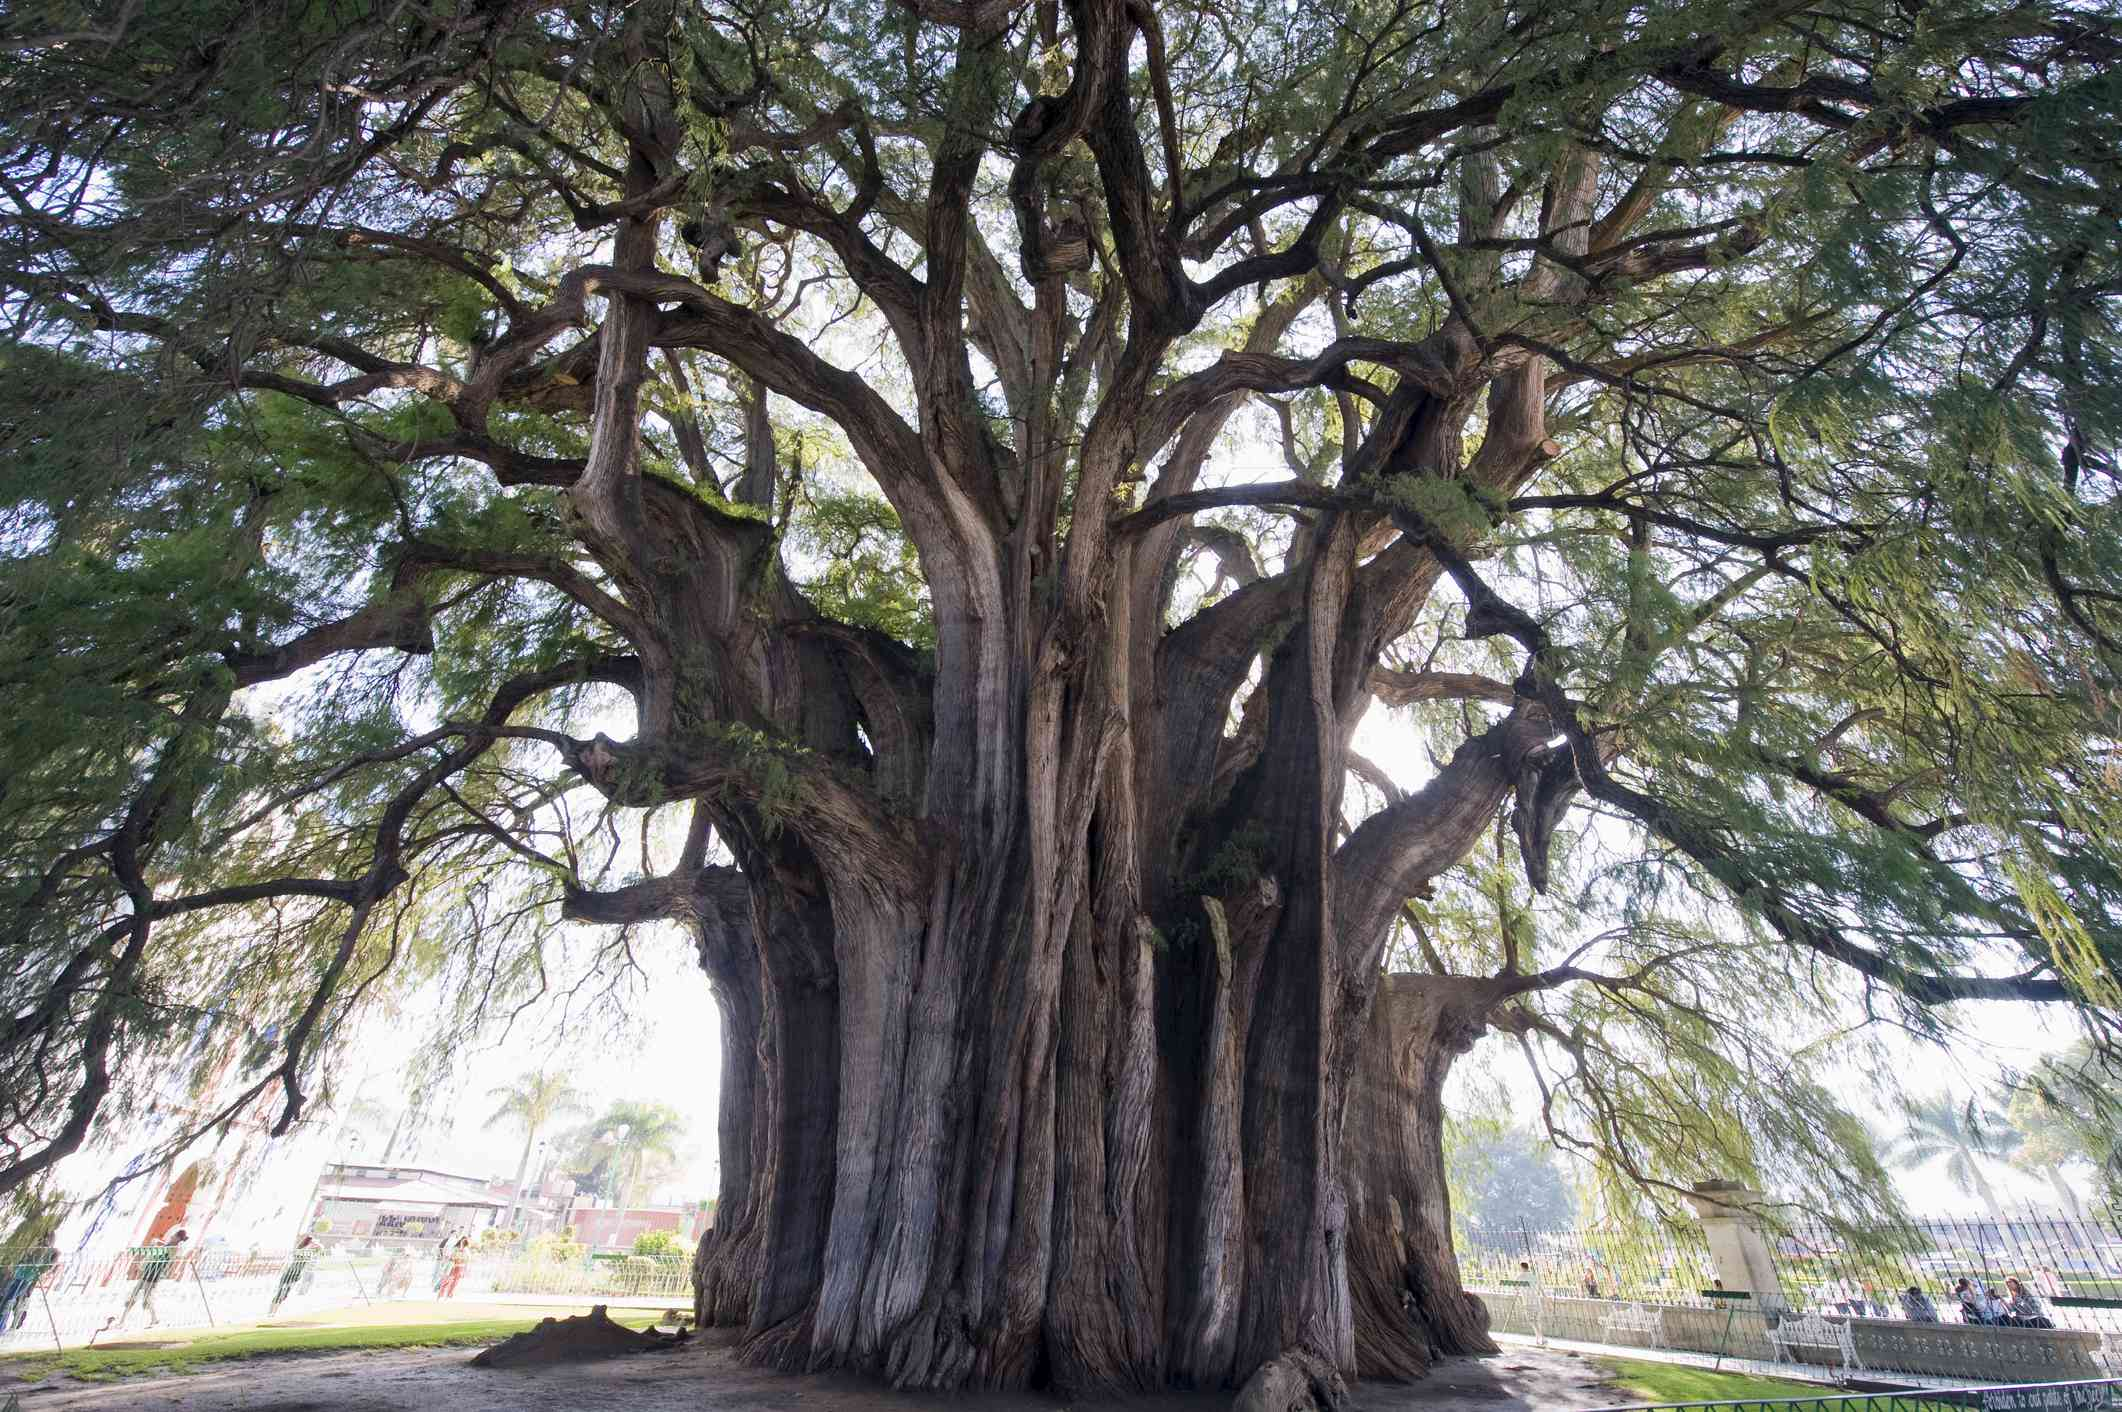 Tule tree, the worlds largest tree by circumference, Oaxaca, Mexico